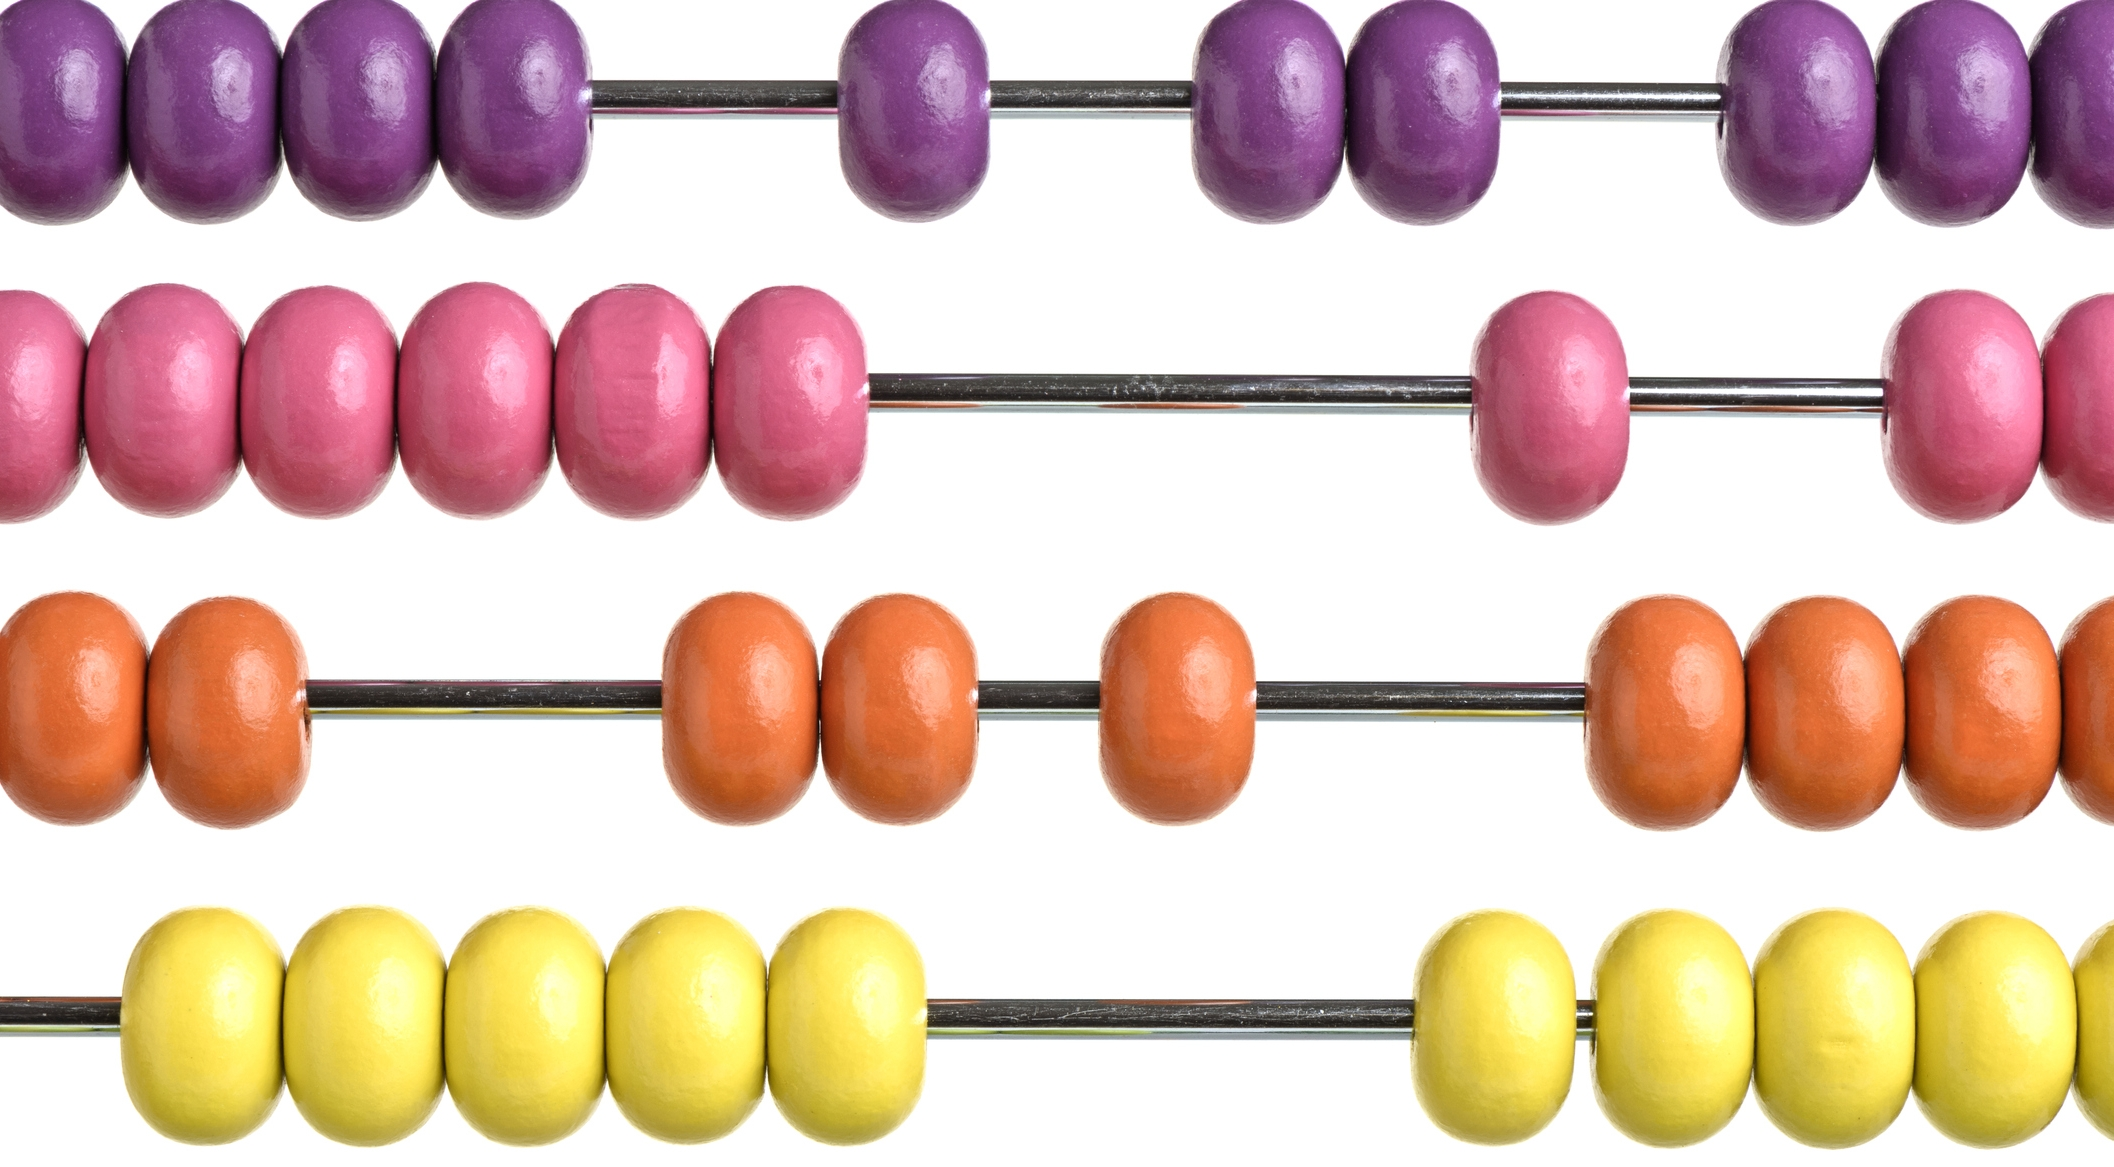 Image: An abacus with colorful beads.